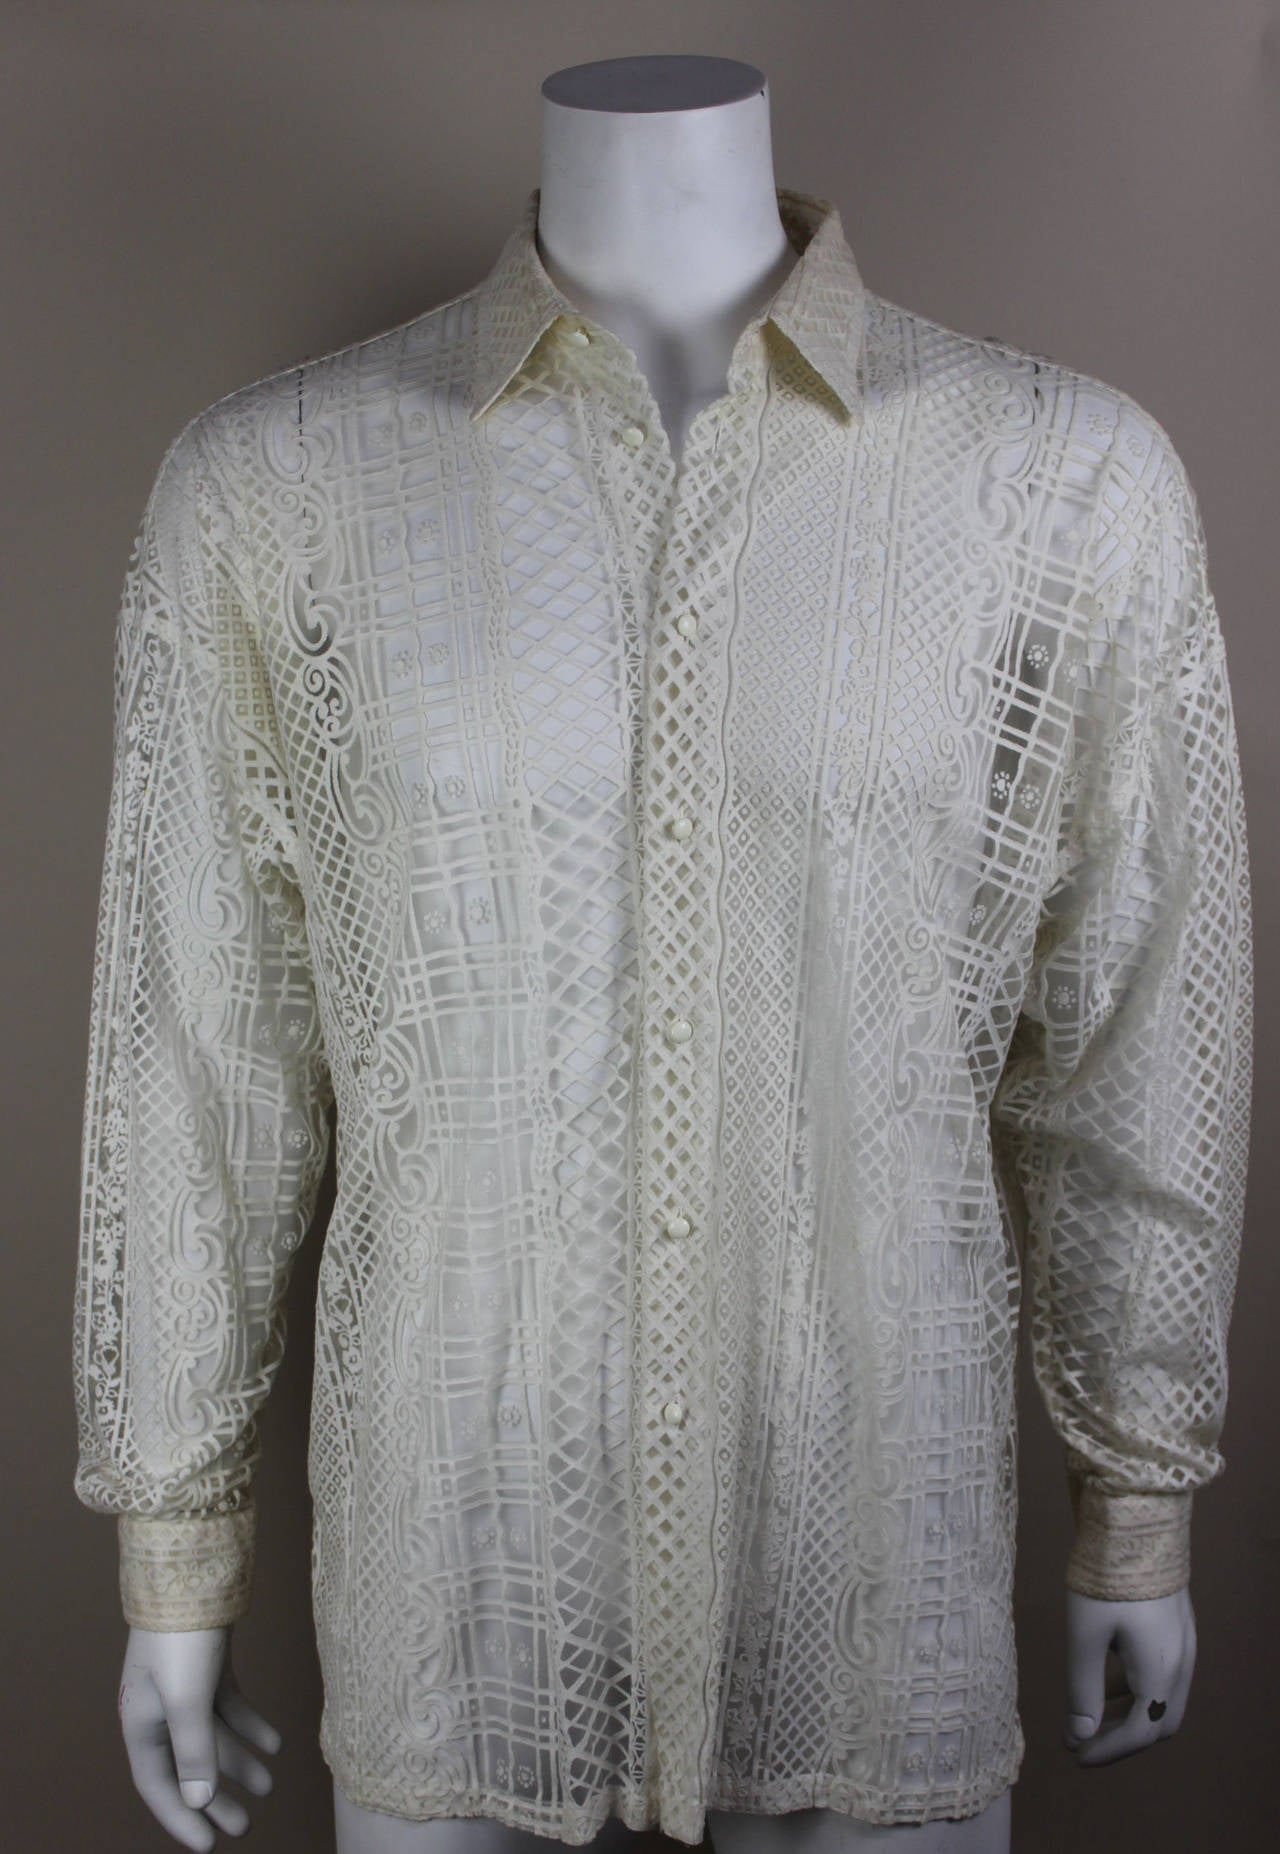 Mens Shirts With Printed Cuffs